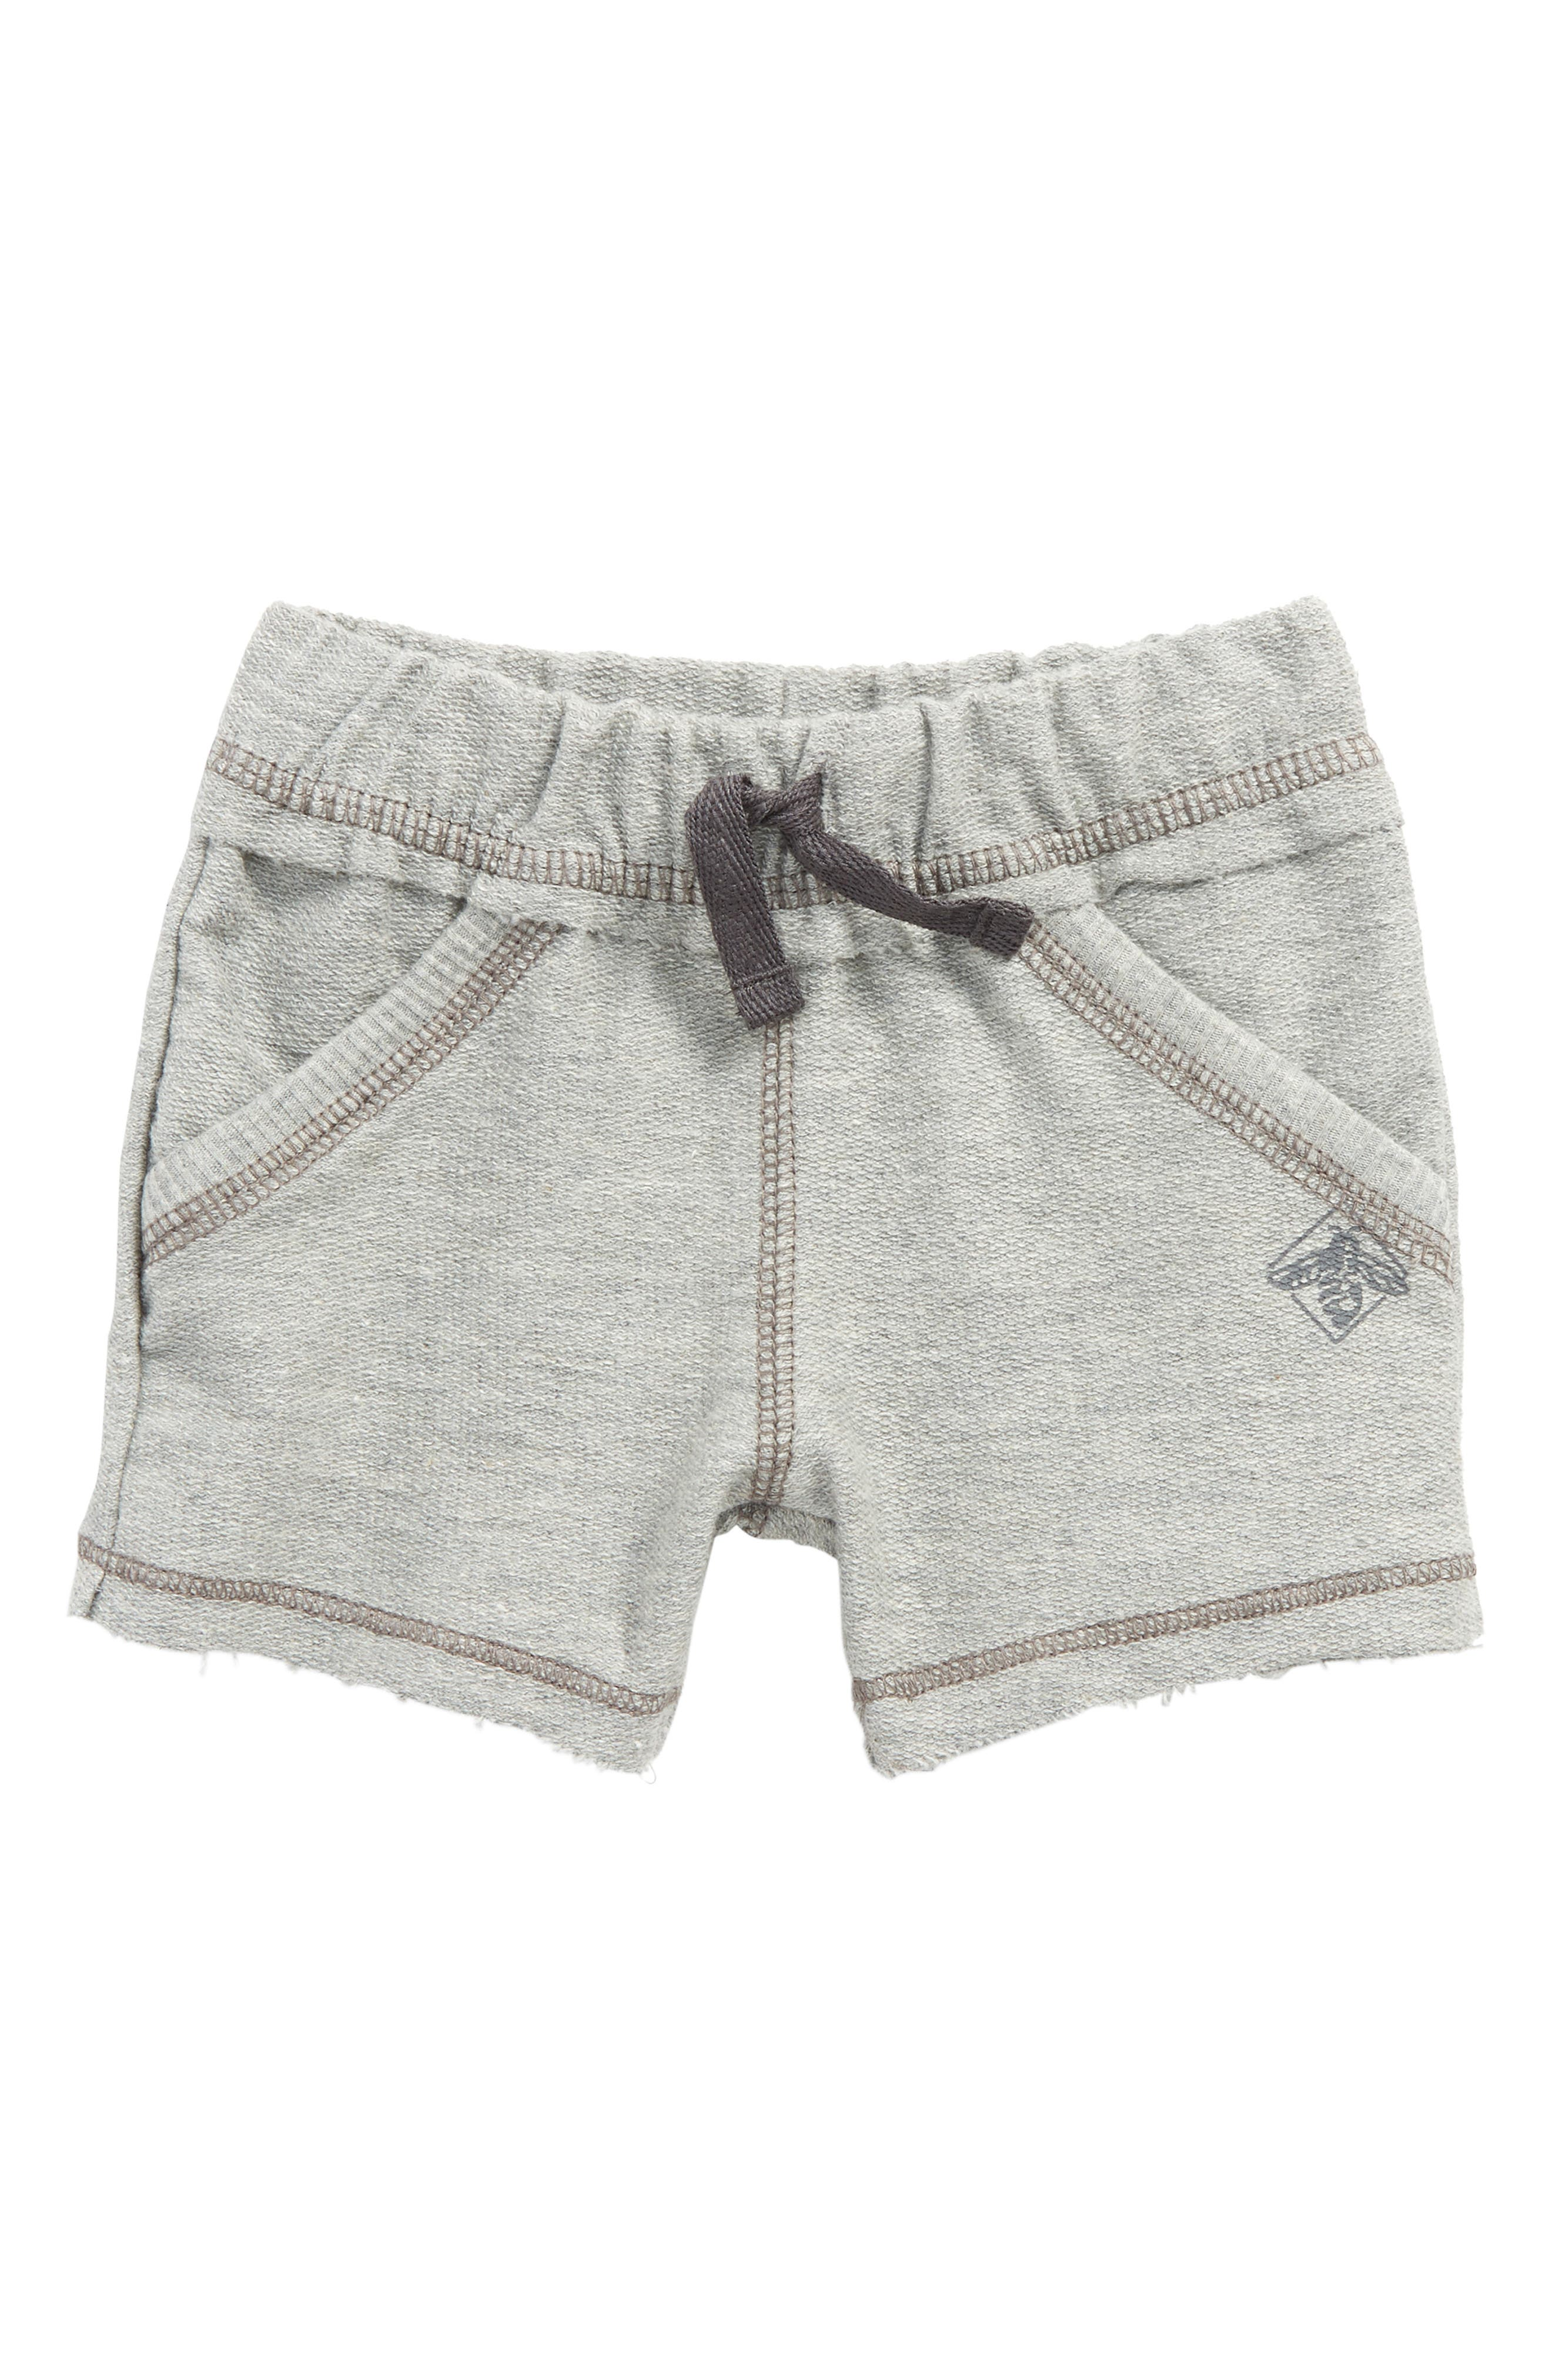 Organic Cotton French Terry Shorts,                             Main thumbnail 1, color,                             050